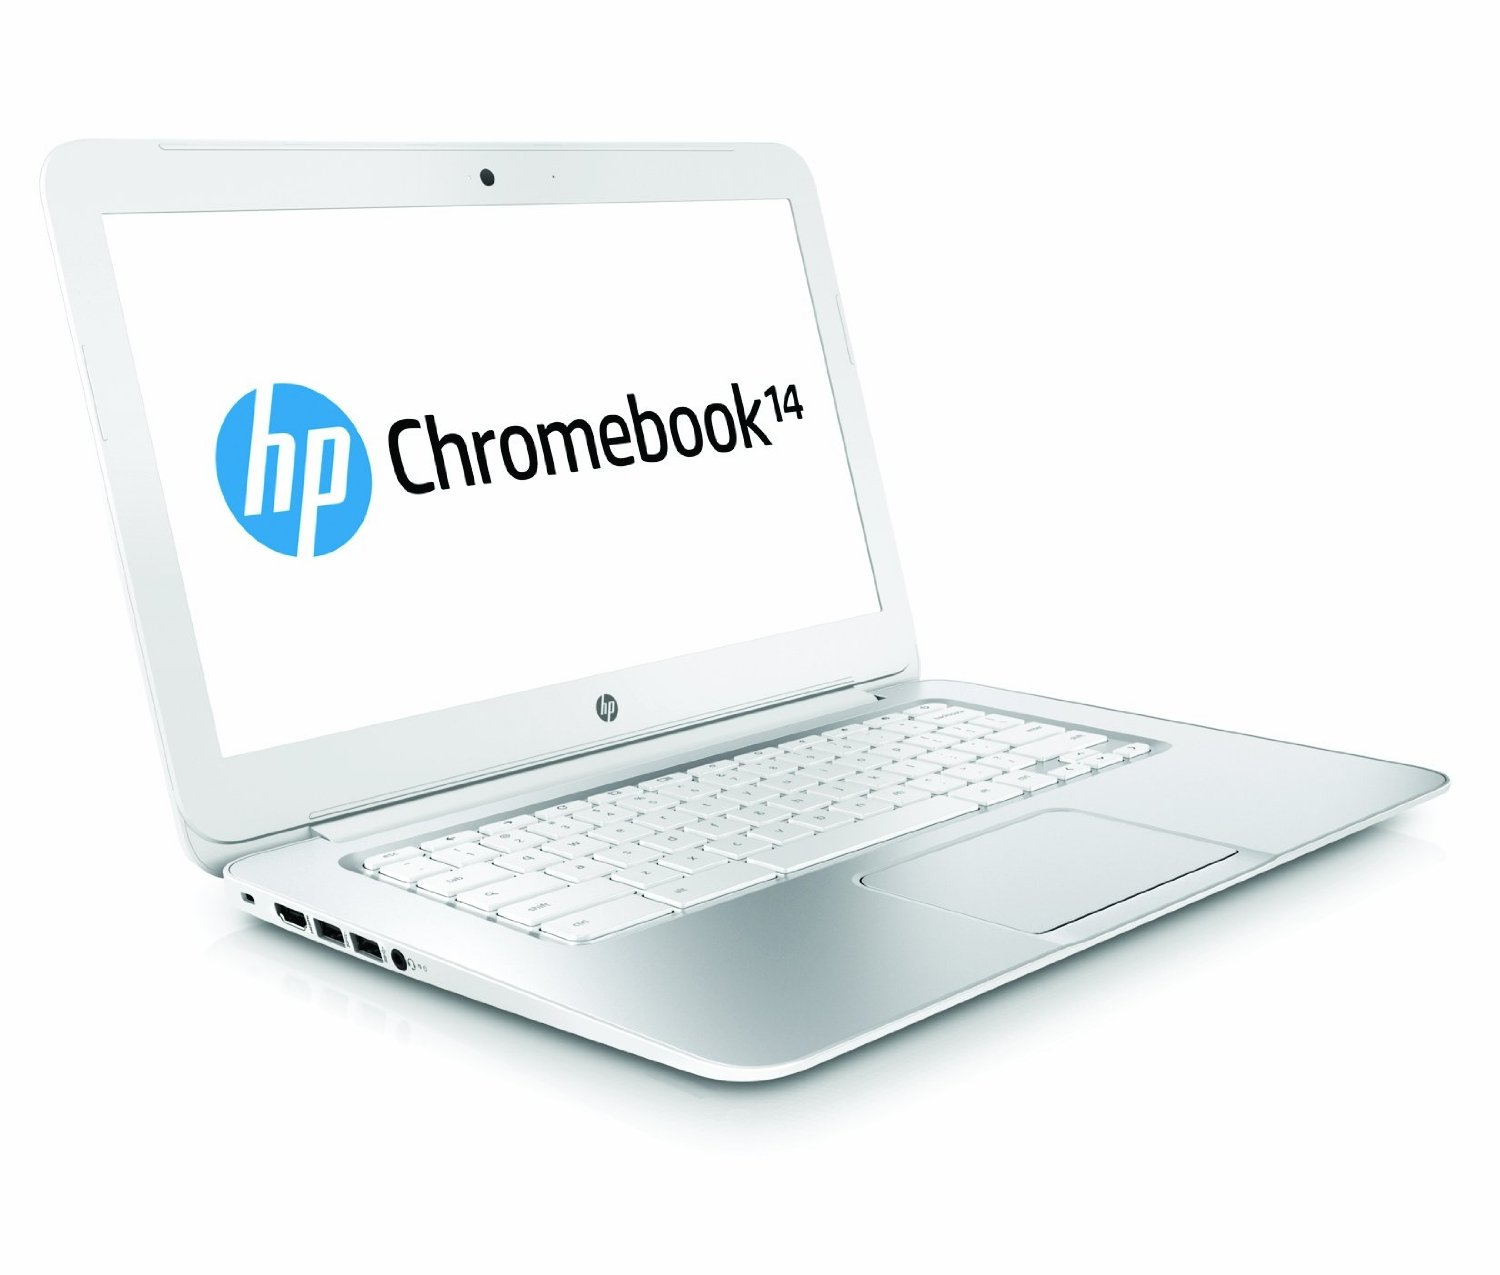 HP Chromebook 14 14-q070nr review